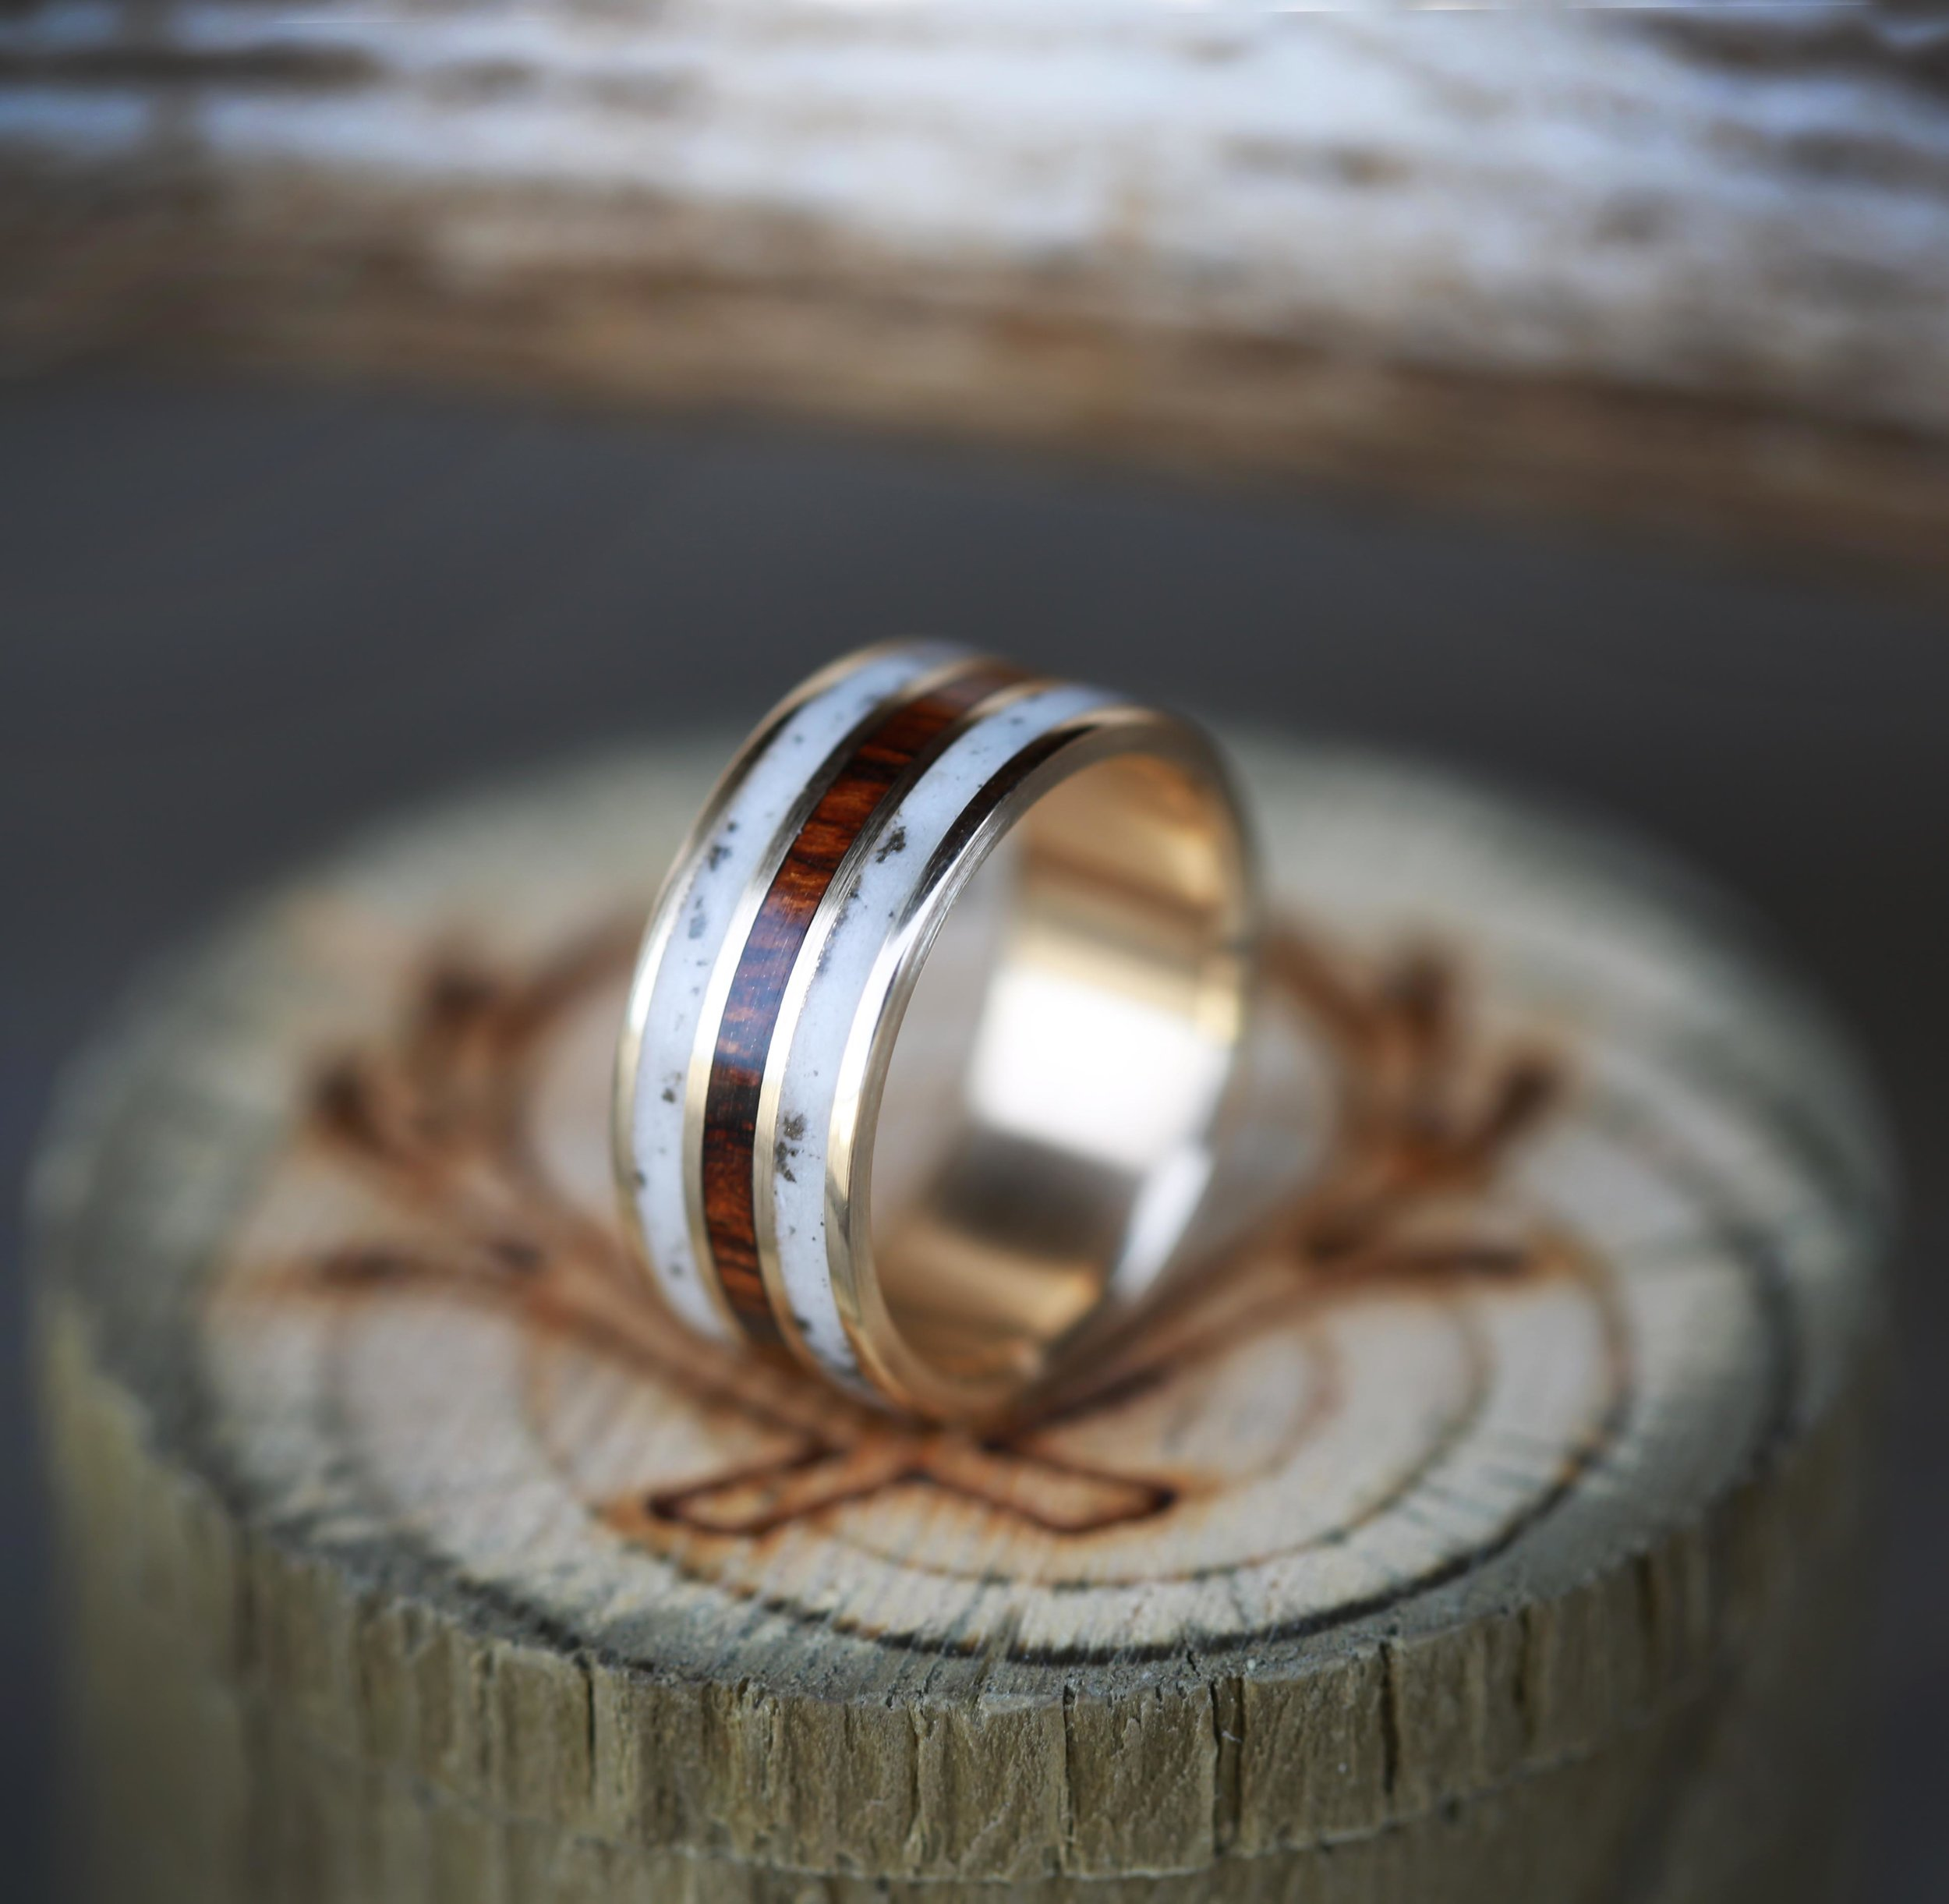 products wedding rings men Ironwood elk antler wedding band with inlays of ironwood elk antler custom made